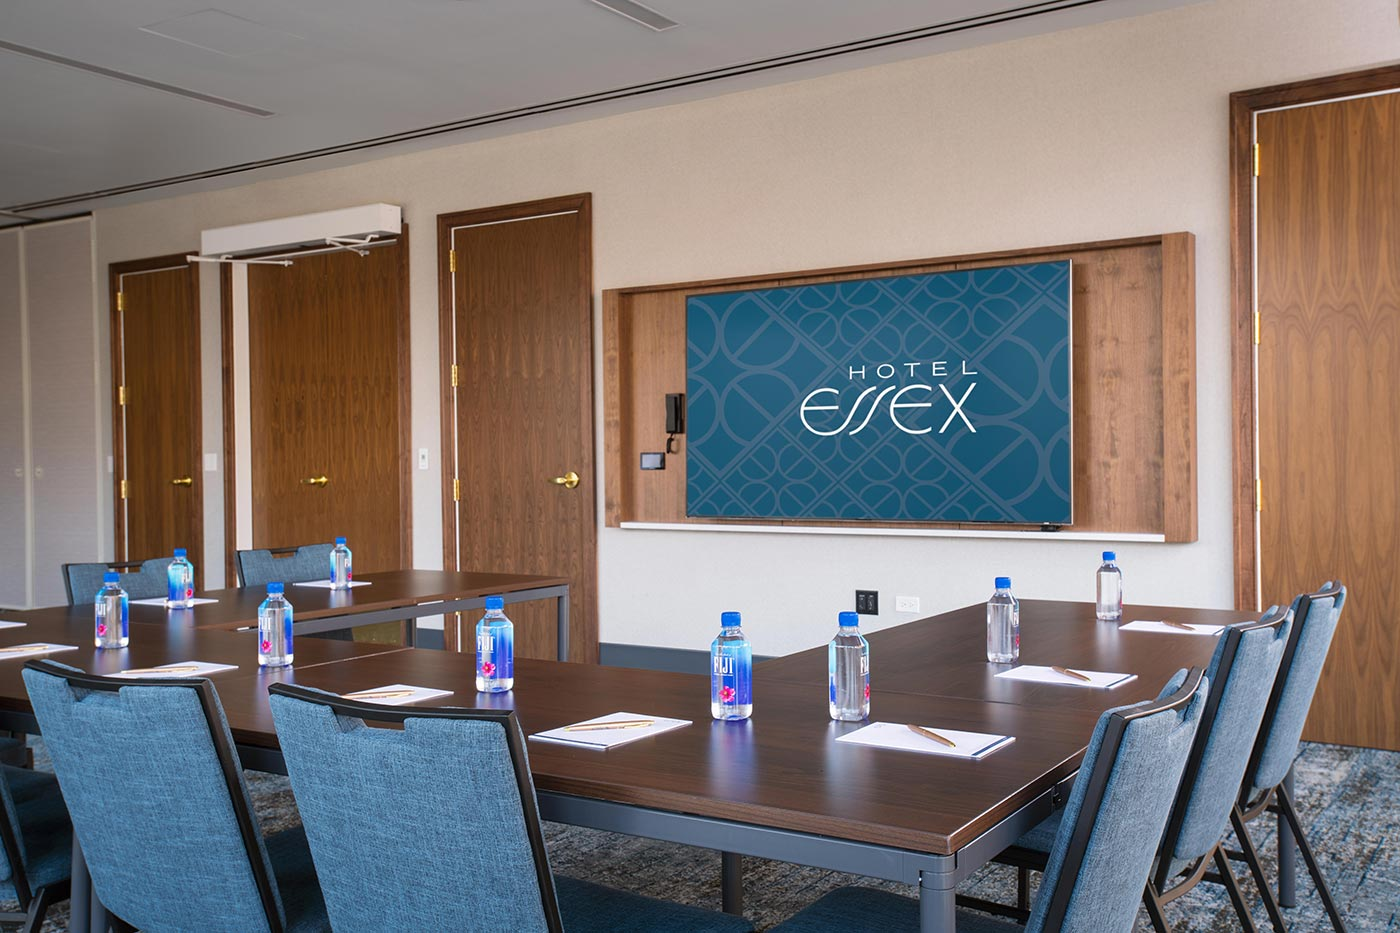 Hotel Essex conference room